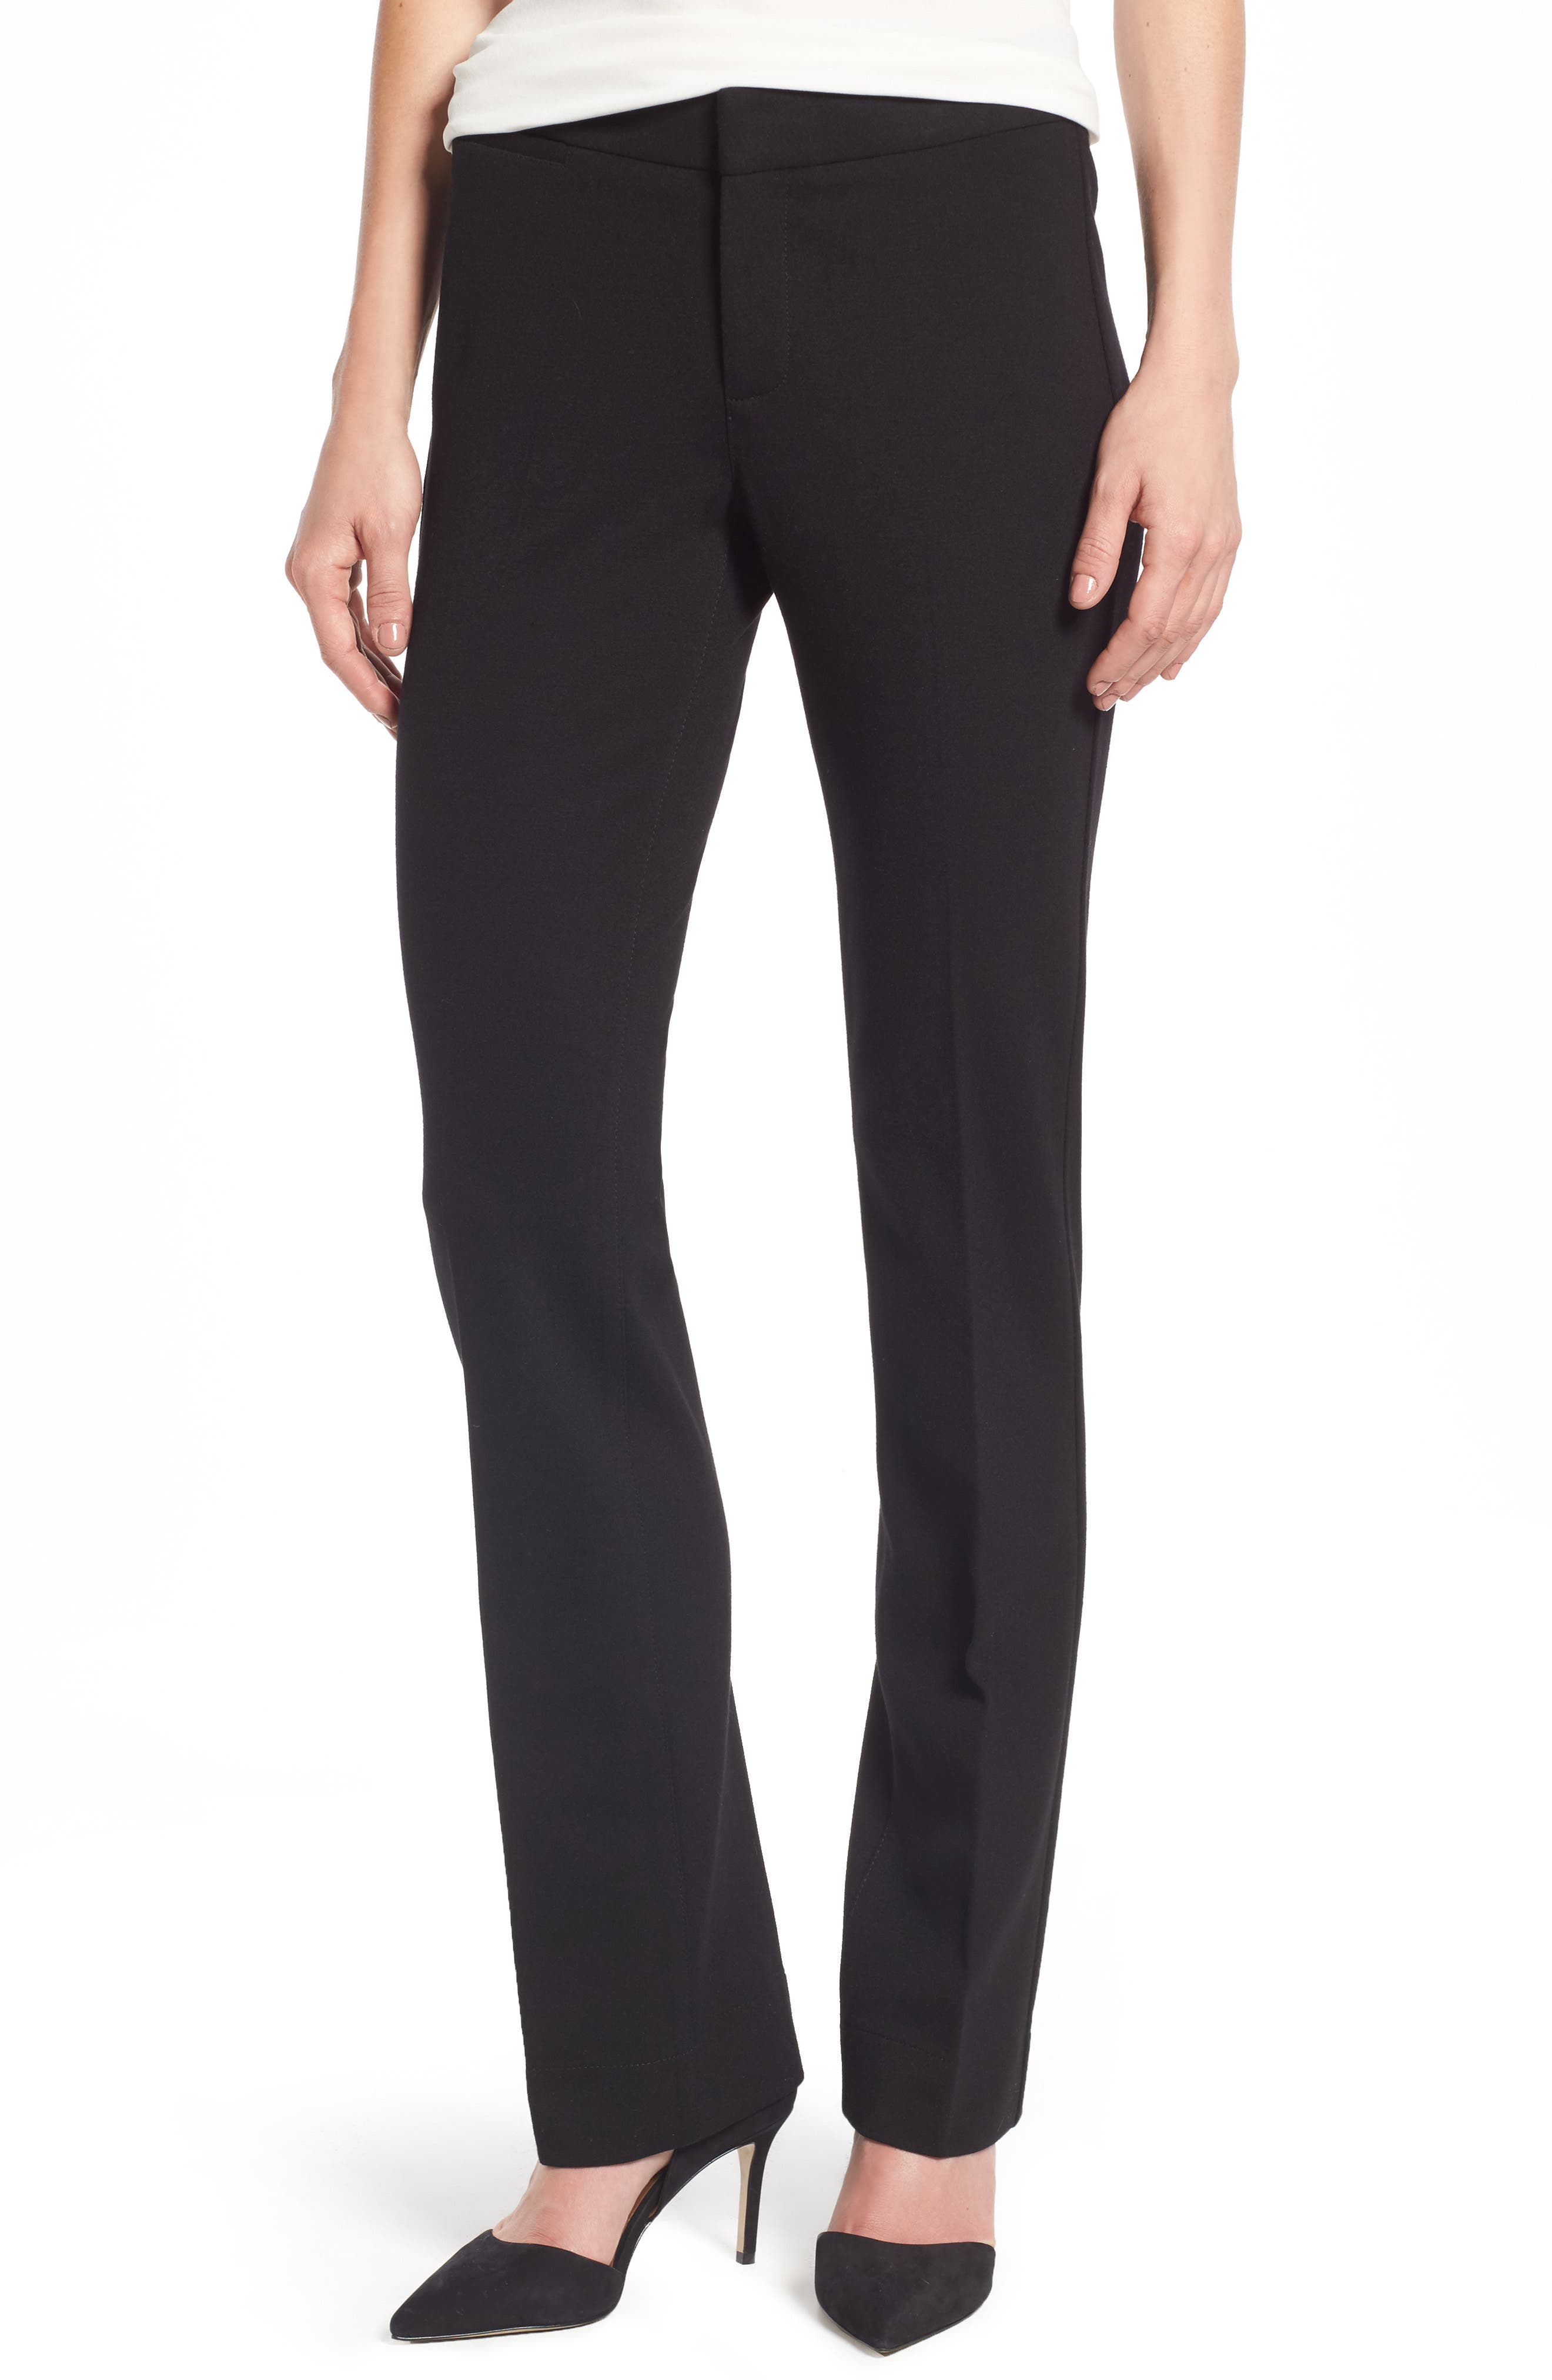 Alternate Image 1 Selected - NYDJ Stretch Knit Trousers (Regular & Petite)